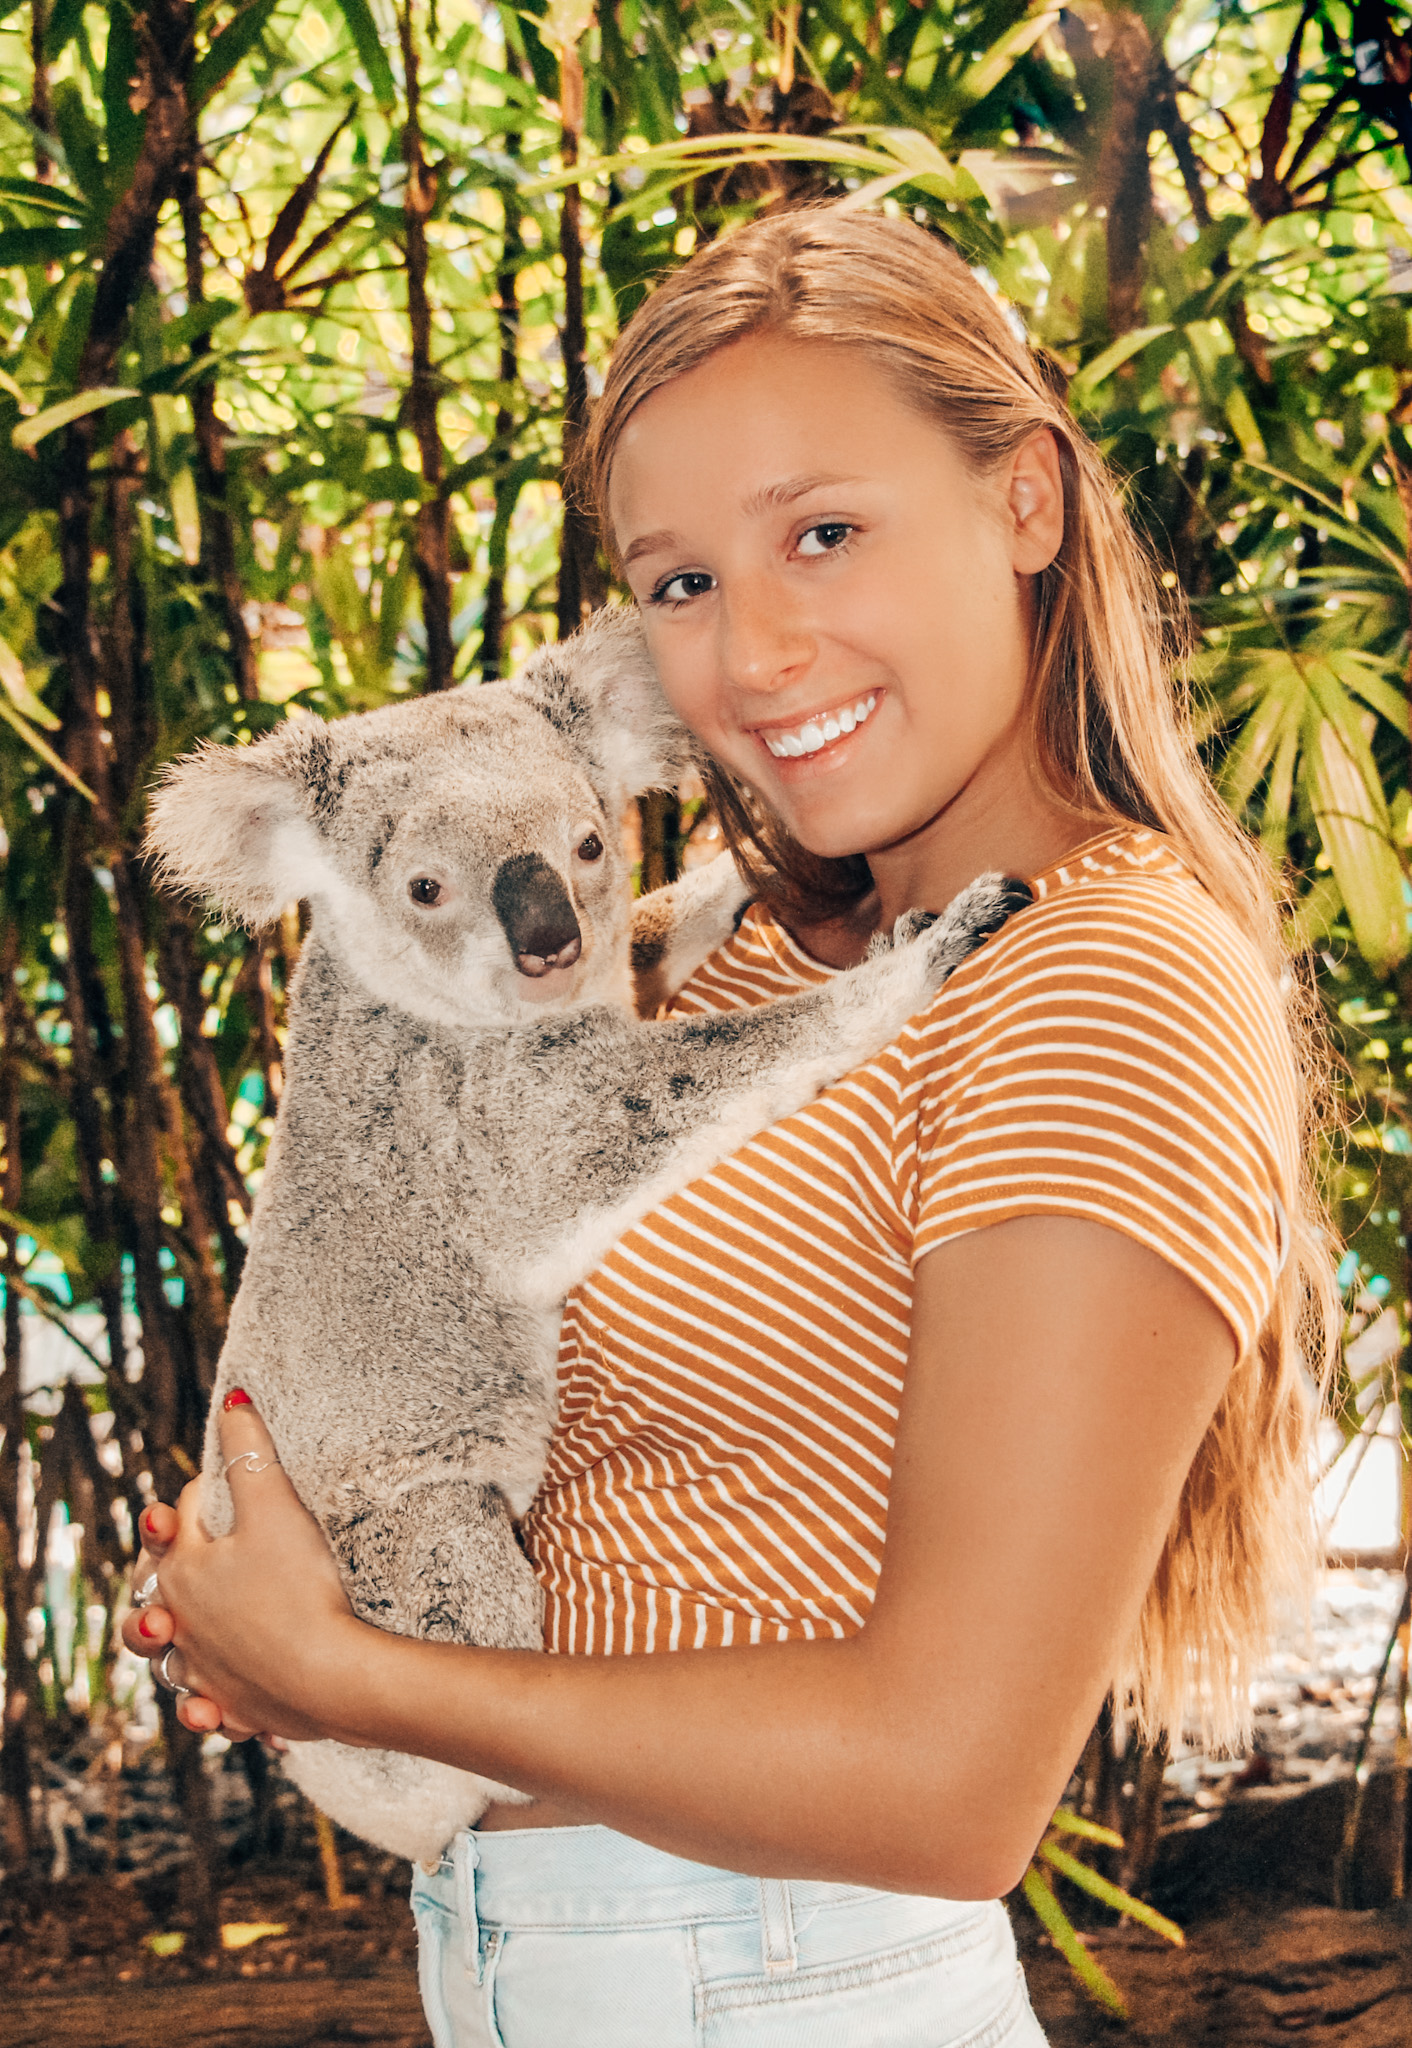 Girl wears a striped shirt and holds a baby koala against her chest while studying abroad in Australia